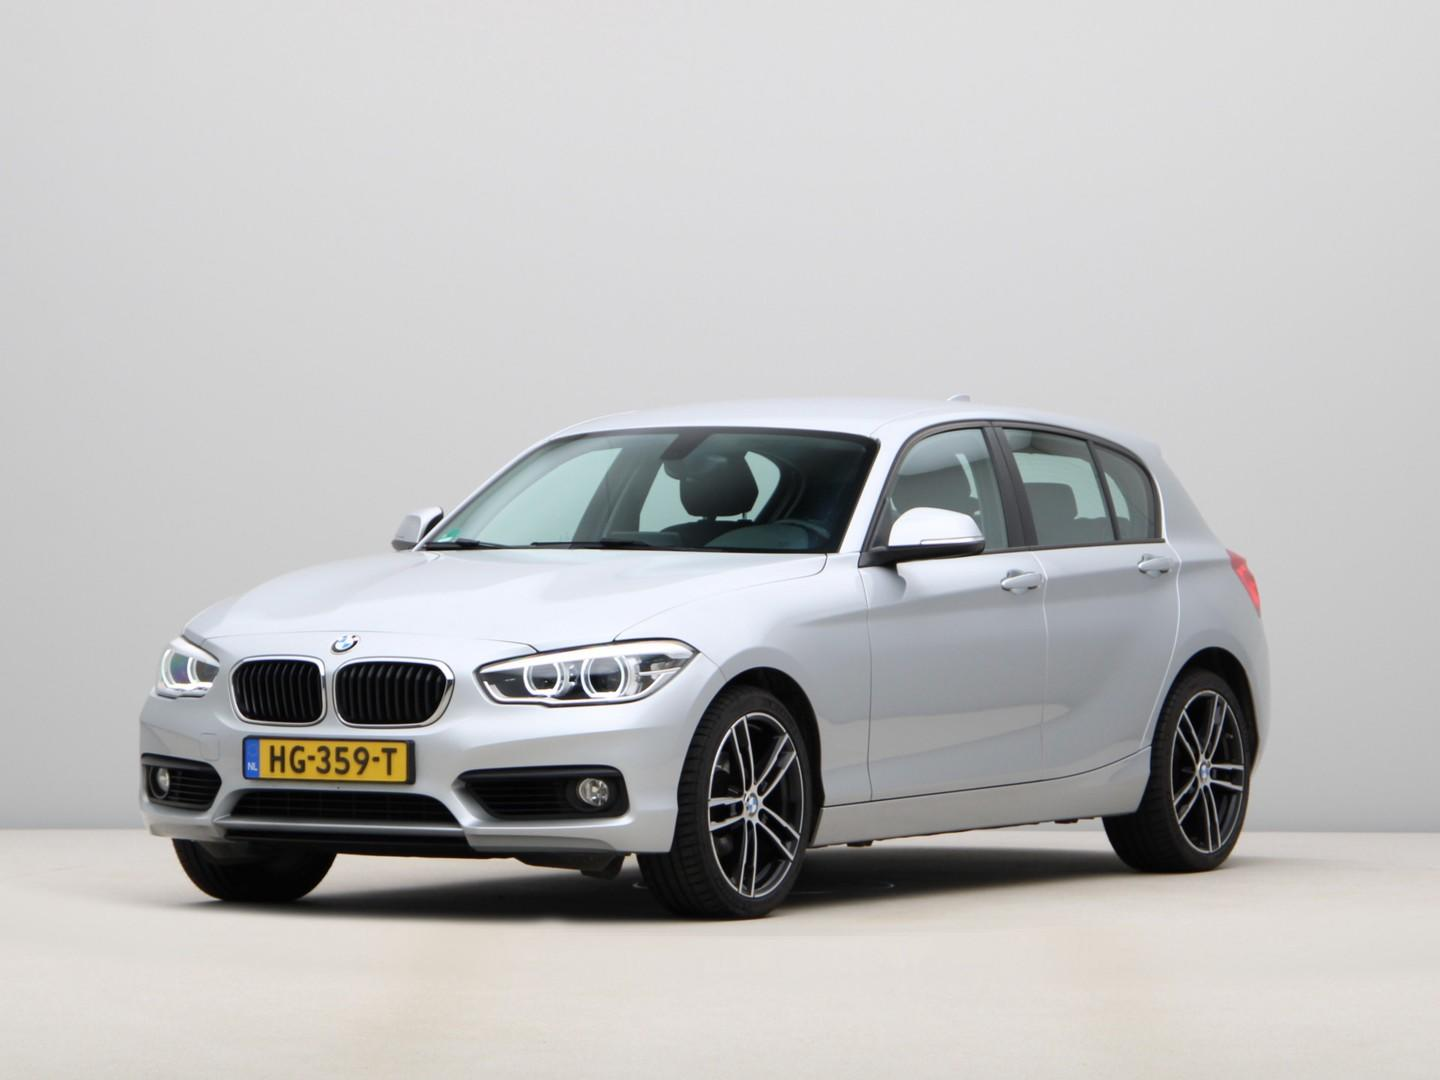 Bmw 1 serie 118d corporate lease essential automaat - 18 inch